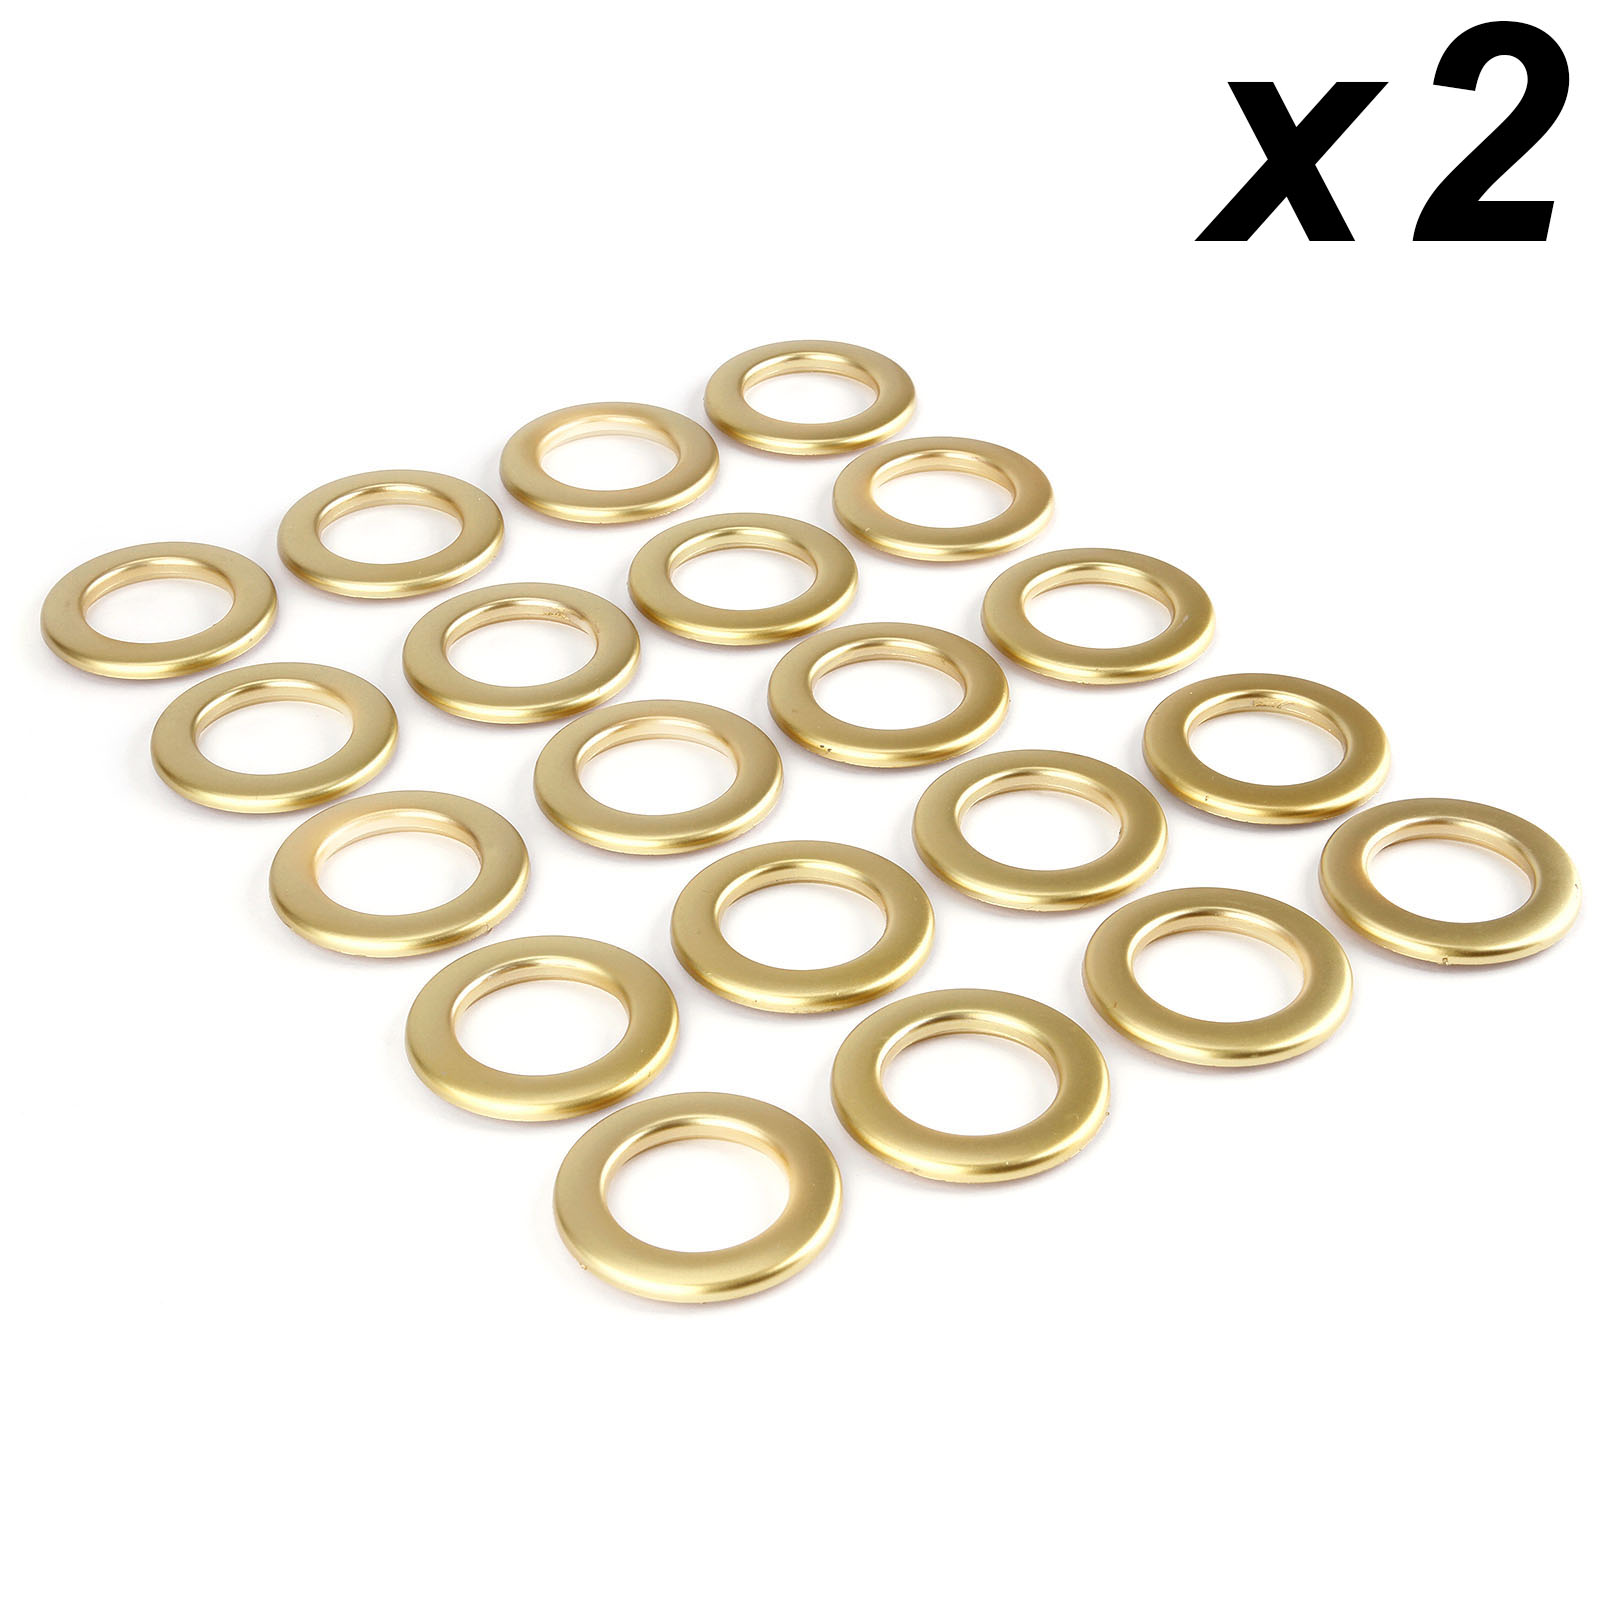 42mm Curtain Grommets Eyelets Roman Rings Home Decor Coffee Color 16pcs